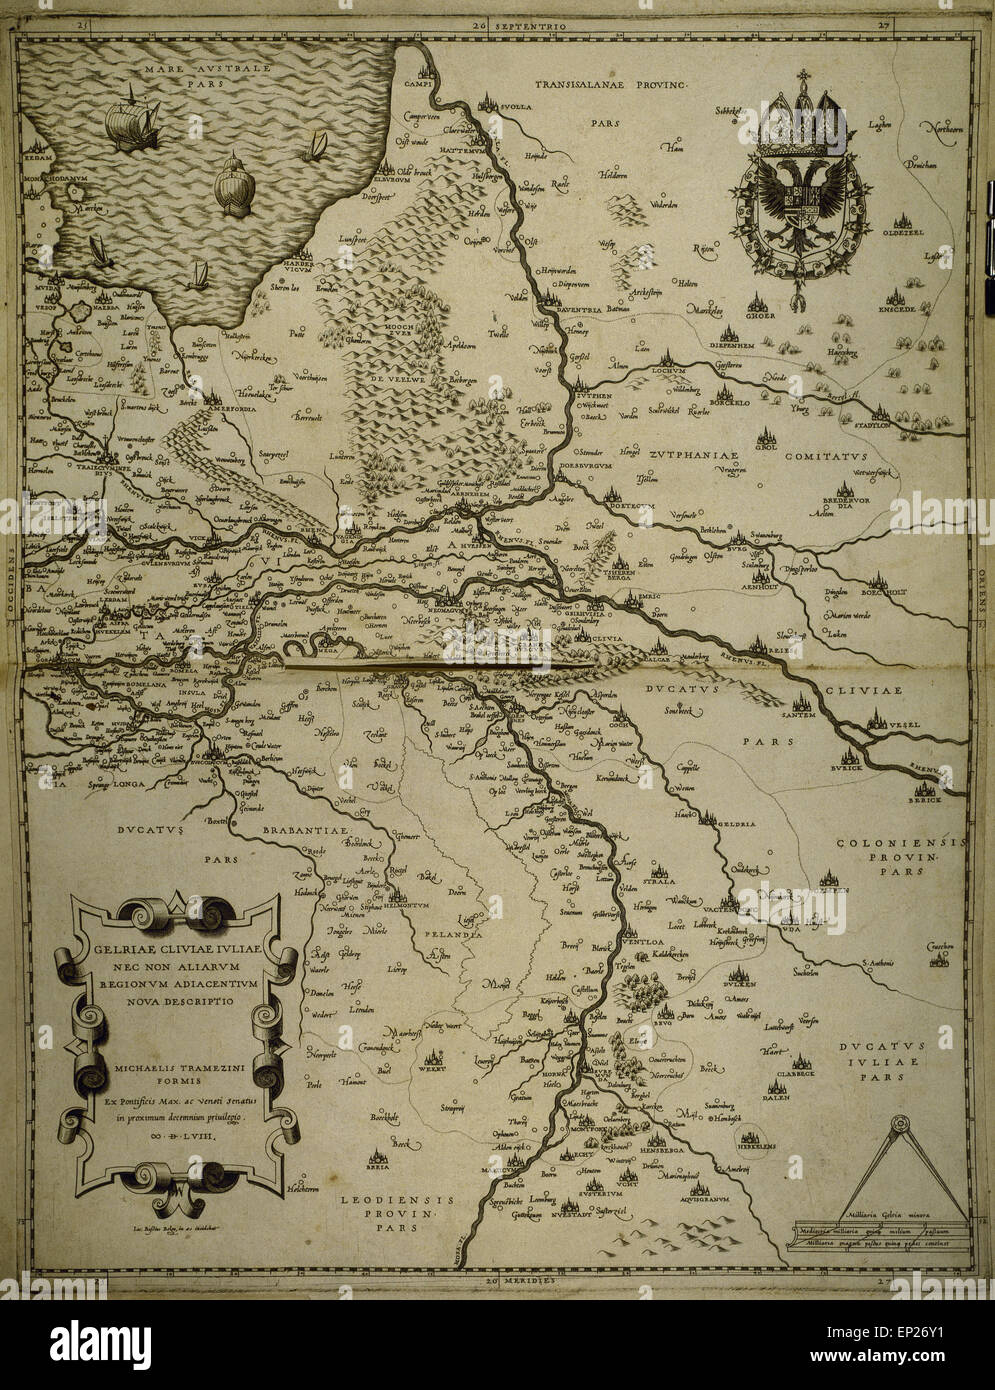 holland belgium and part of germany map made by michaelis tramezini 1558